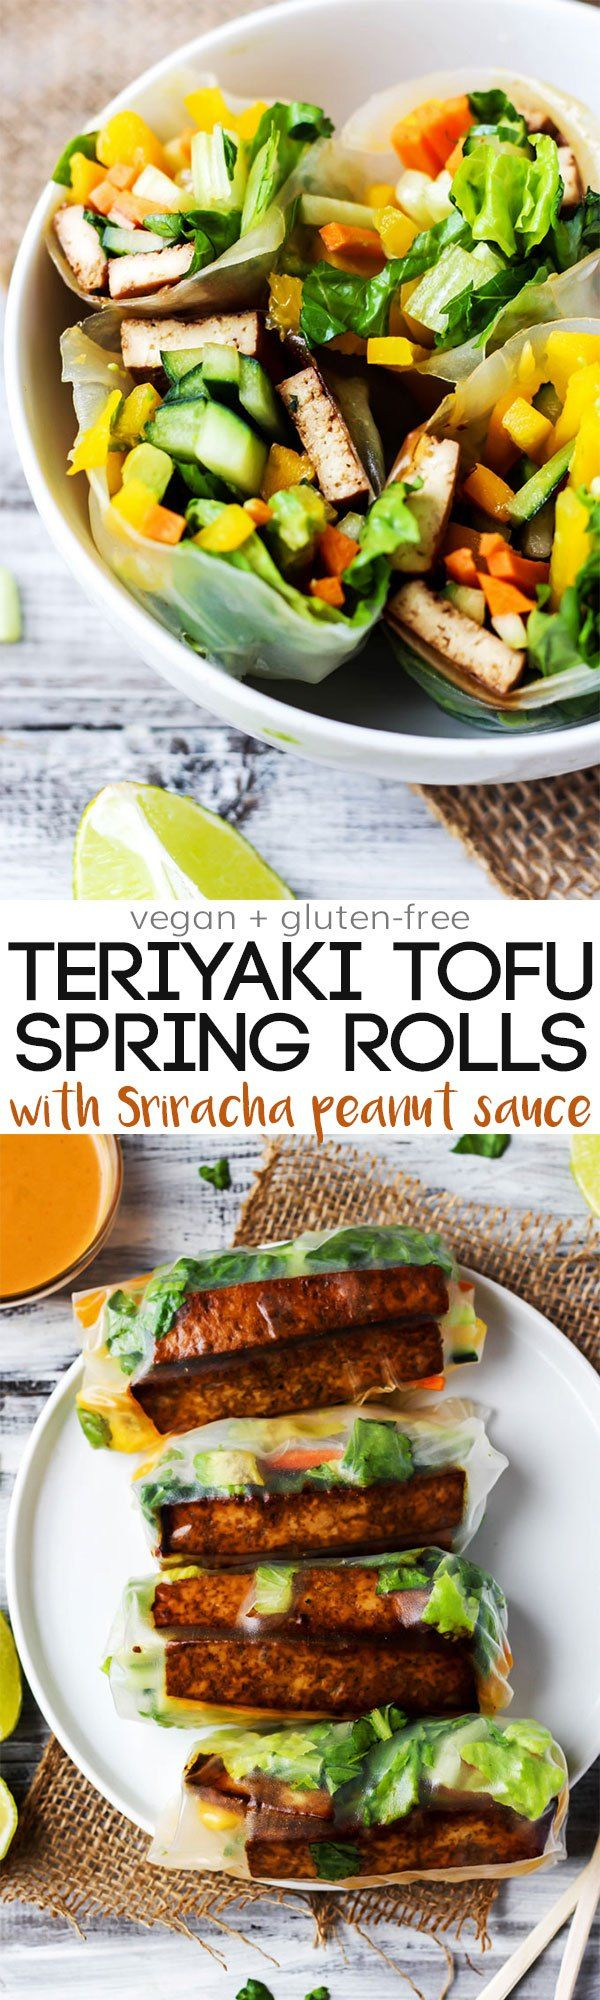 Tofu Spring Rolls with Sriracha Peanut Sauce | Recipe | Vegetables ...